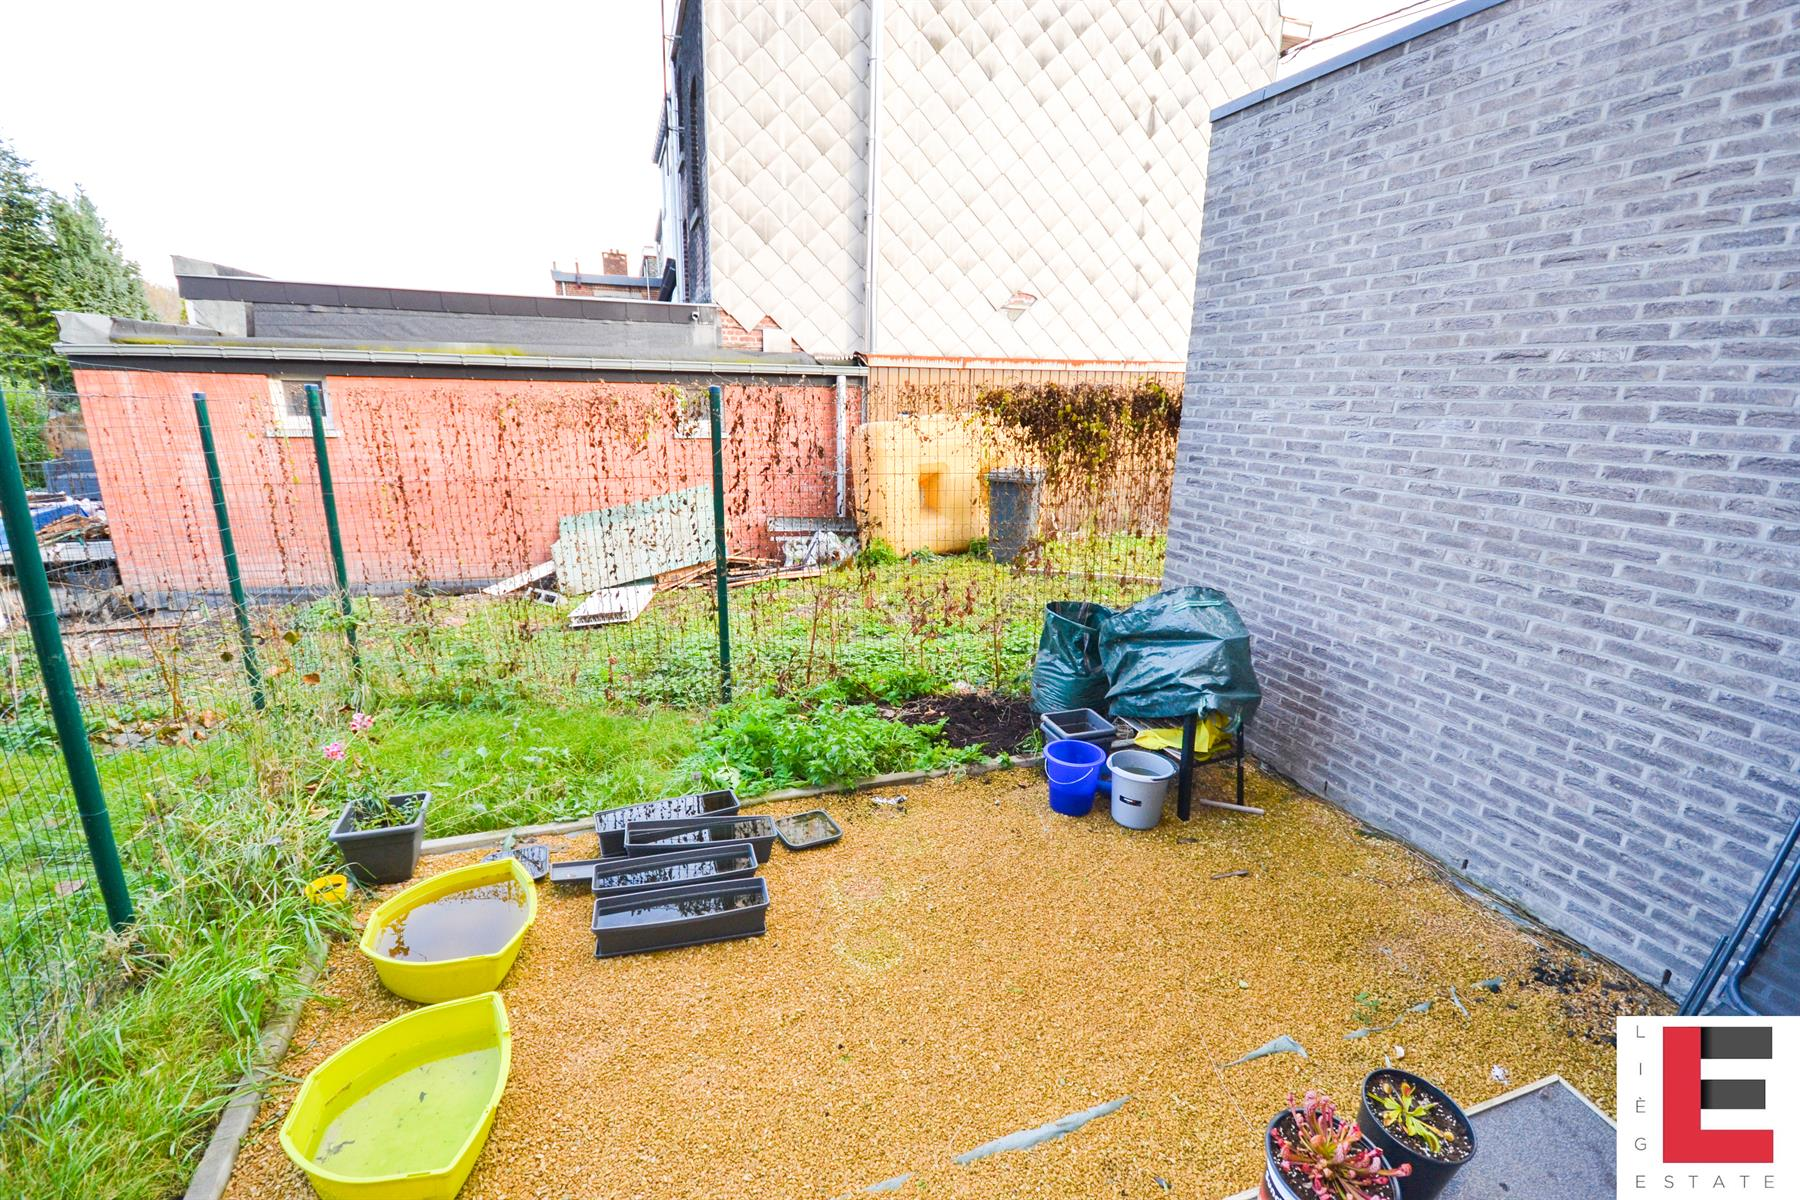 Ground floor with garden - Liege - #3914641-6